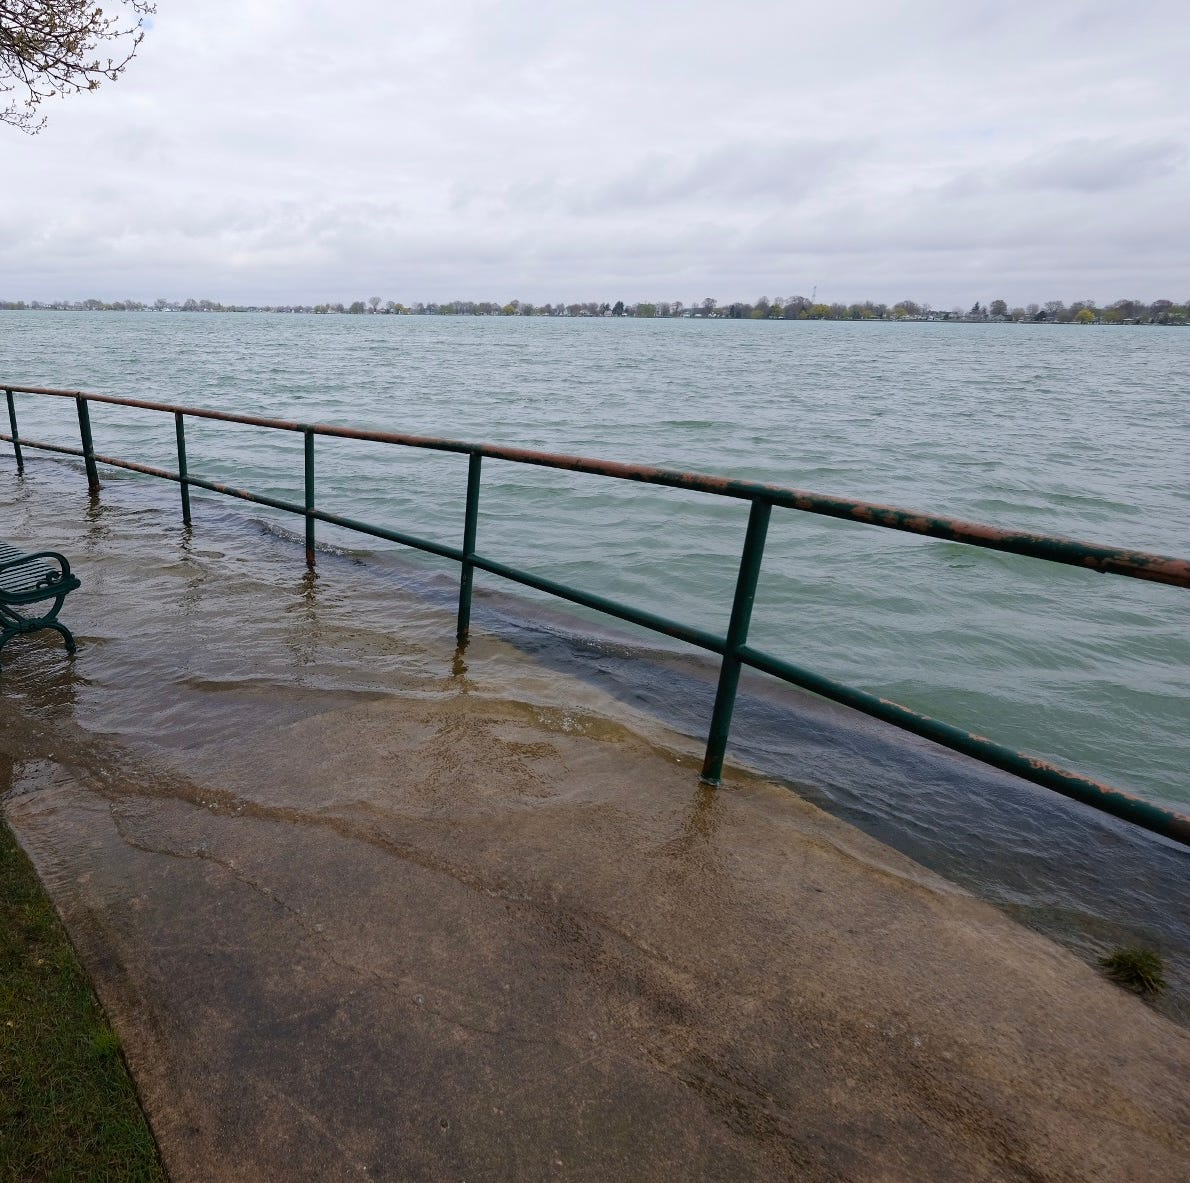 Localized flooding expected along shoreline tonight